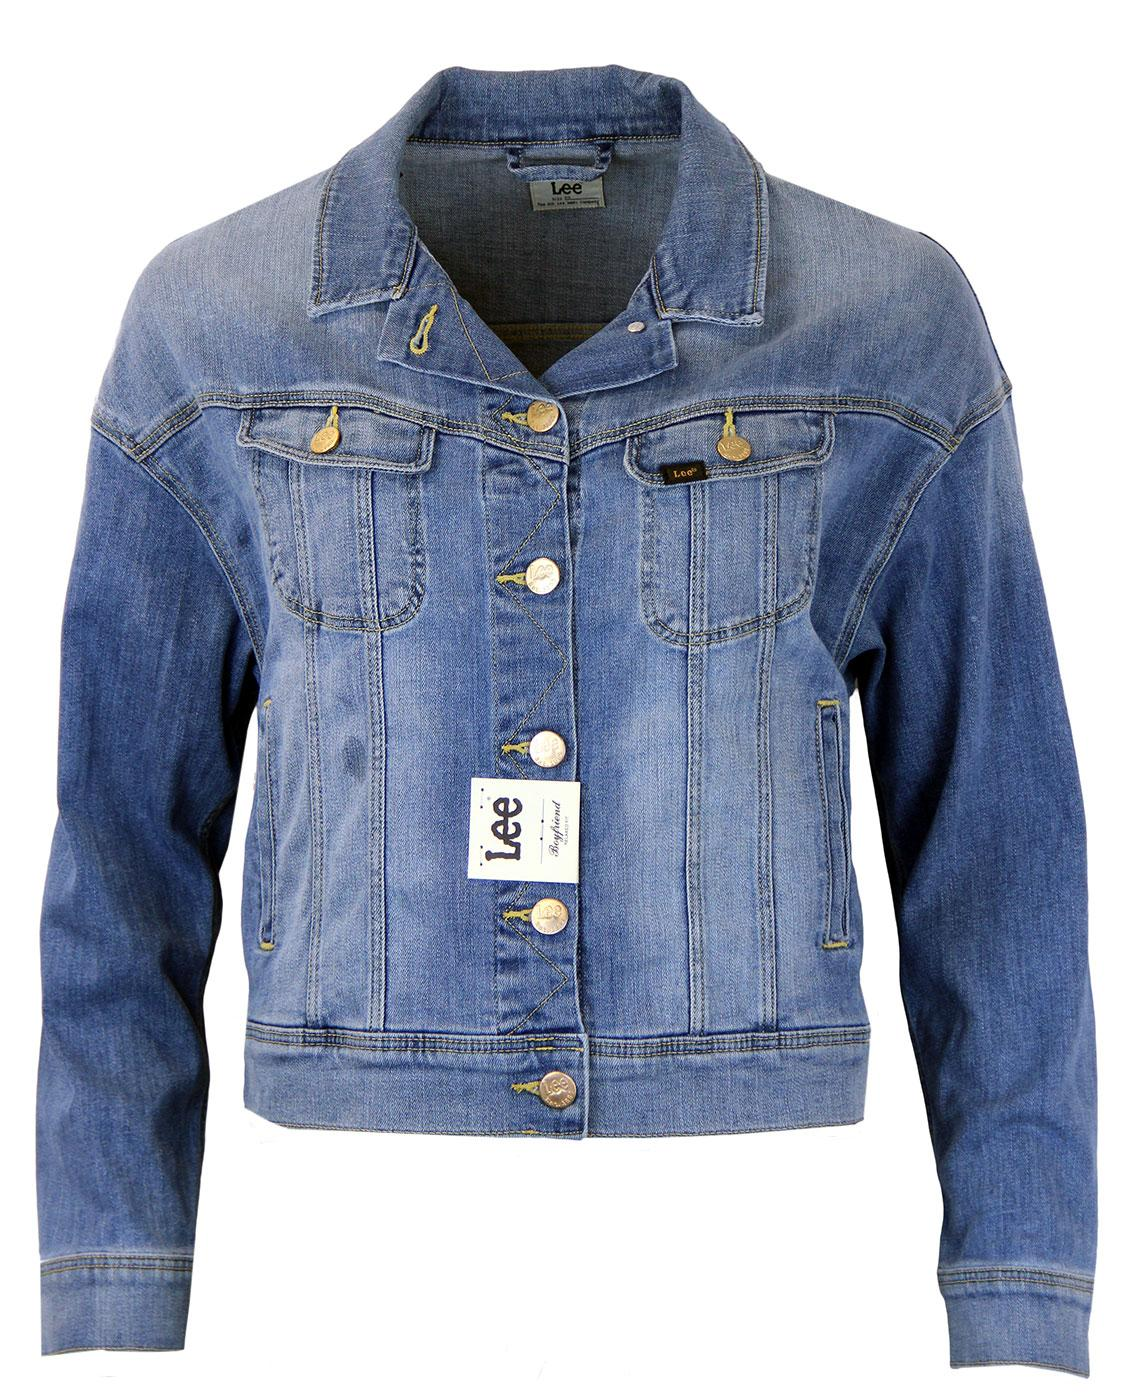 LEE Retro Indie Boyfriend Fit Denim Rider Jacket